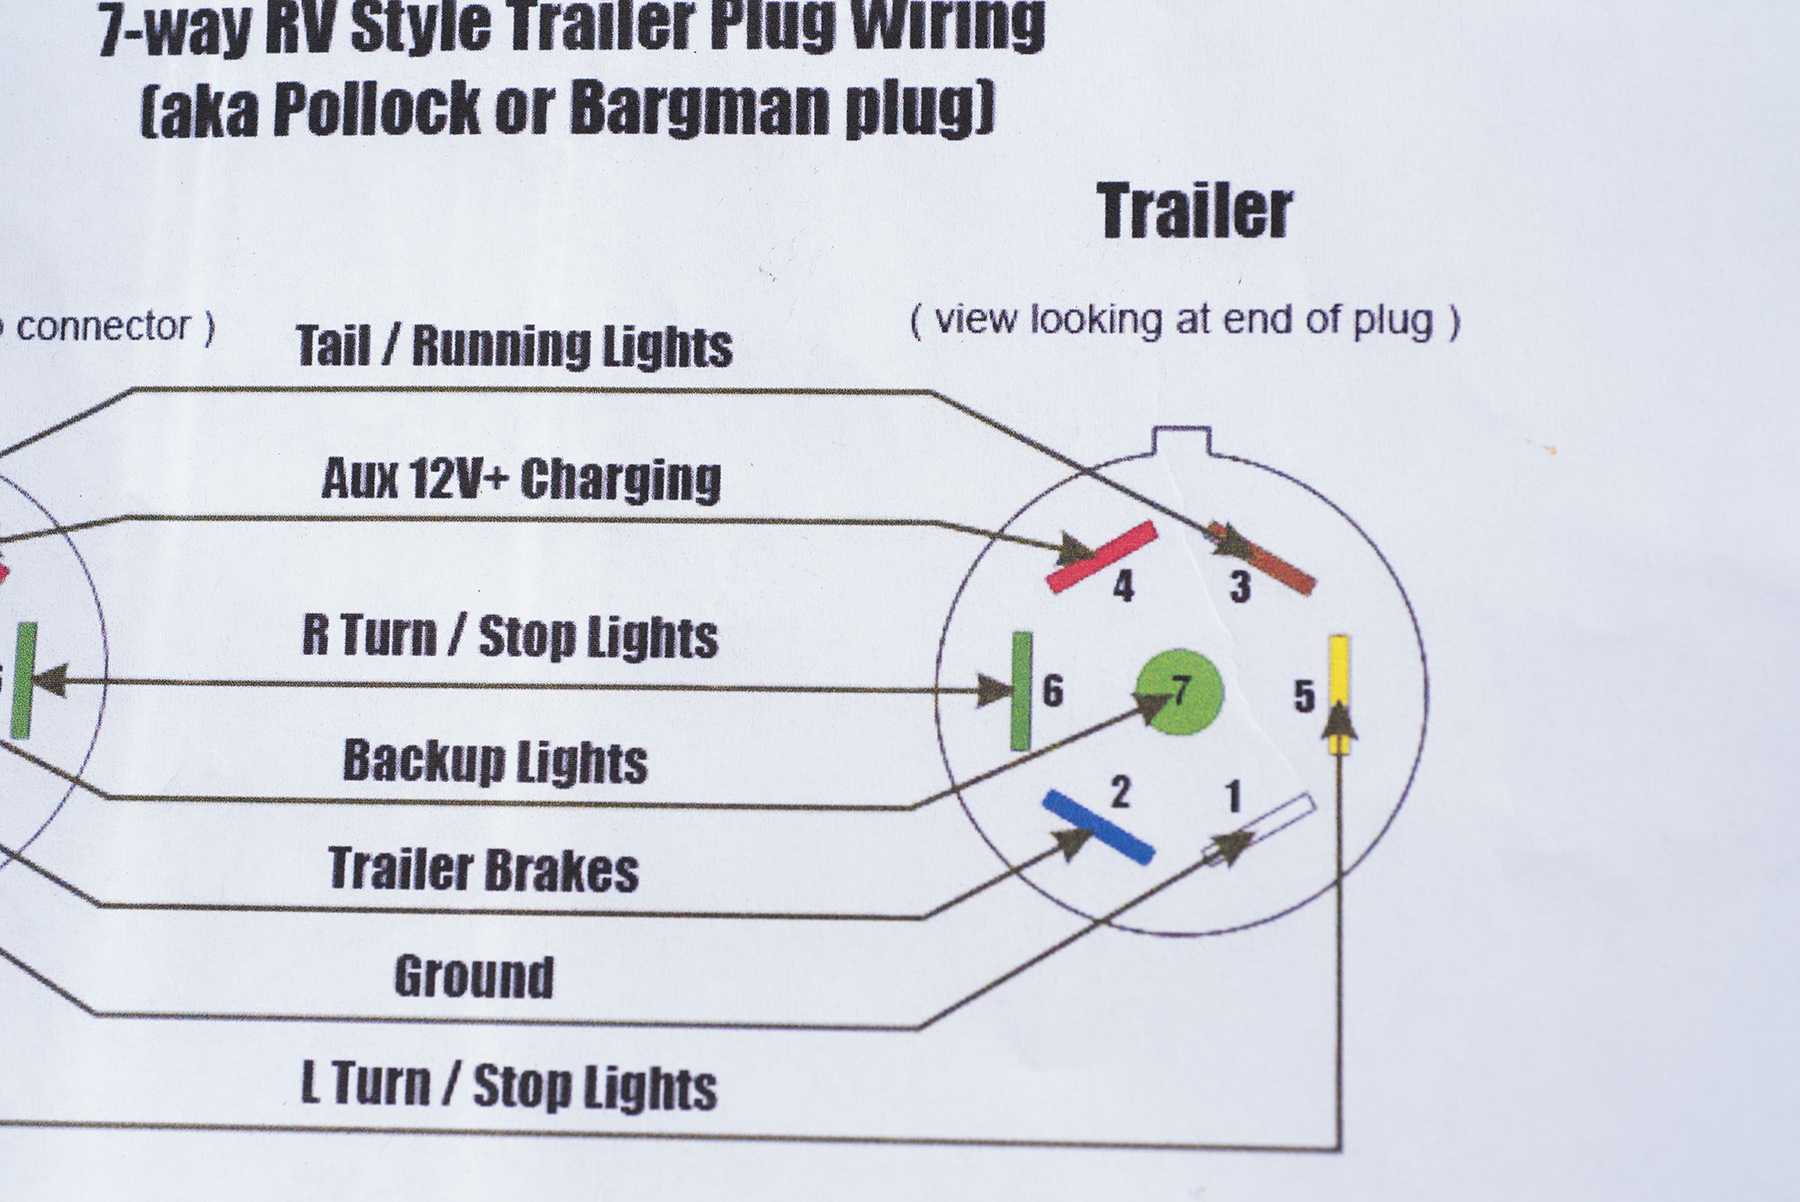 Carry On Trailers Wiring Diagram | Manual E-Books - Carry-On Trailer Wiring Diagram